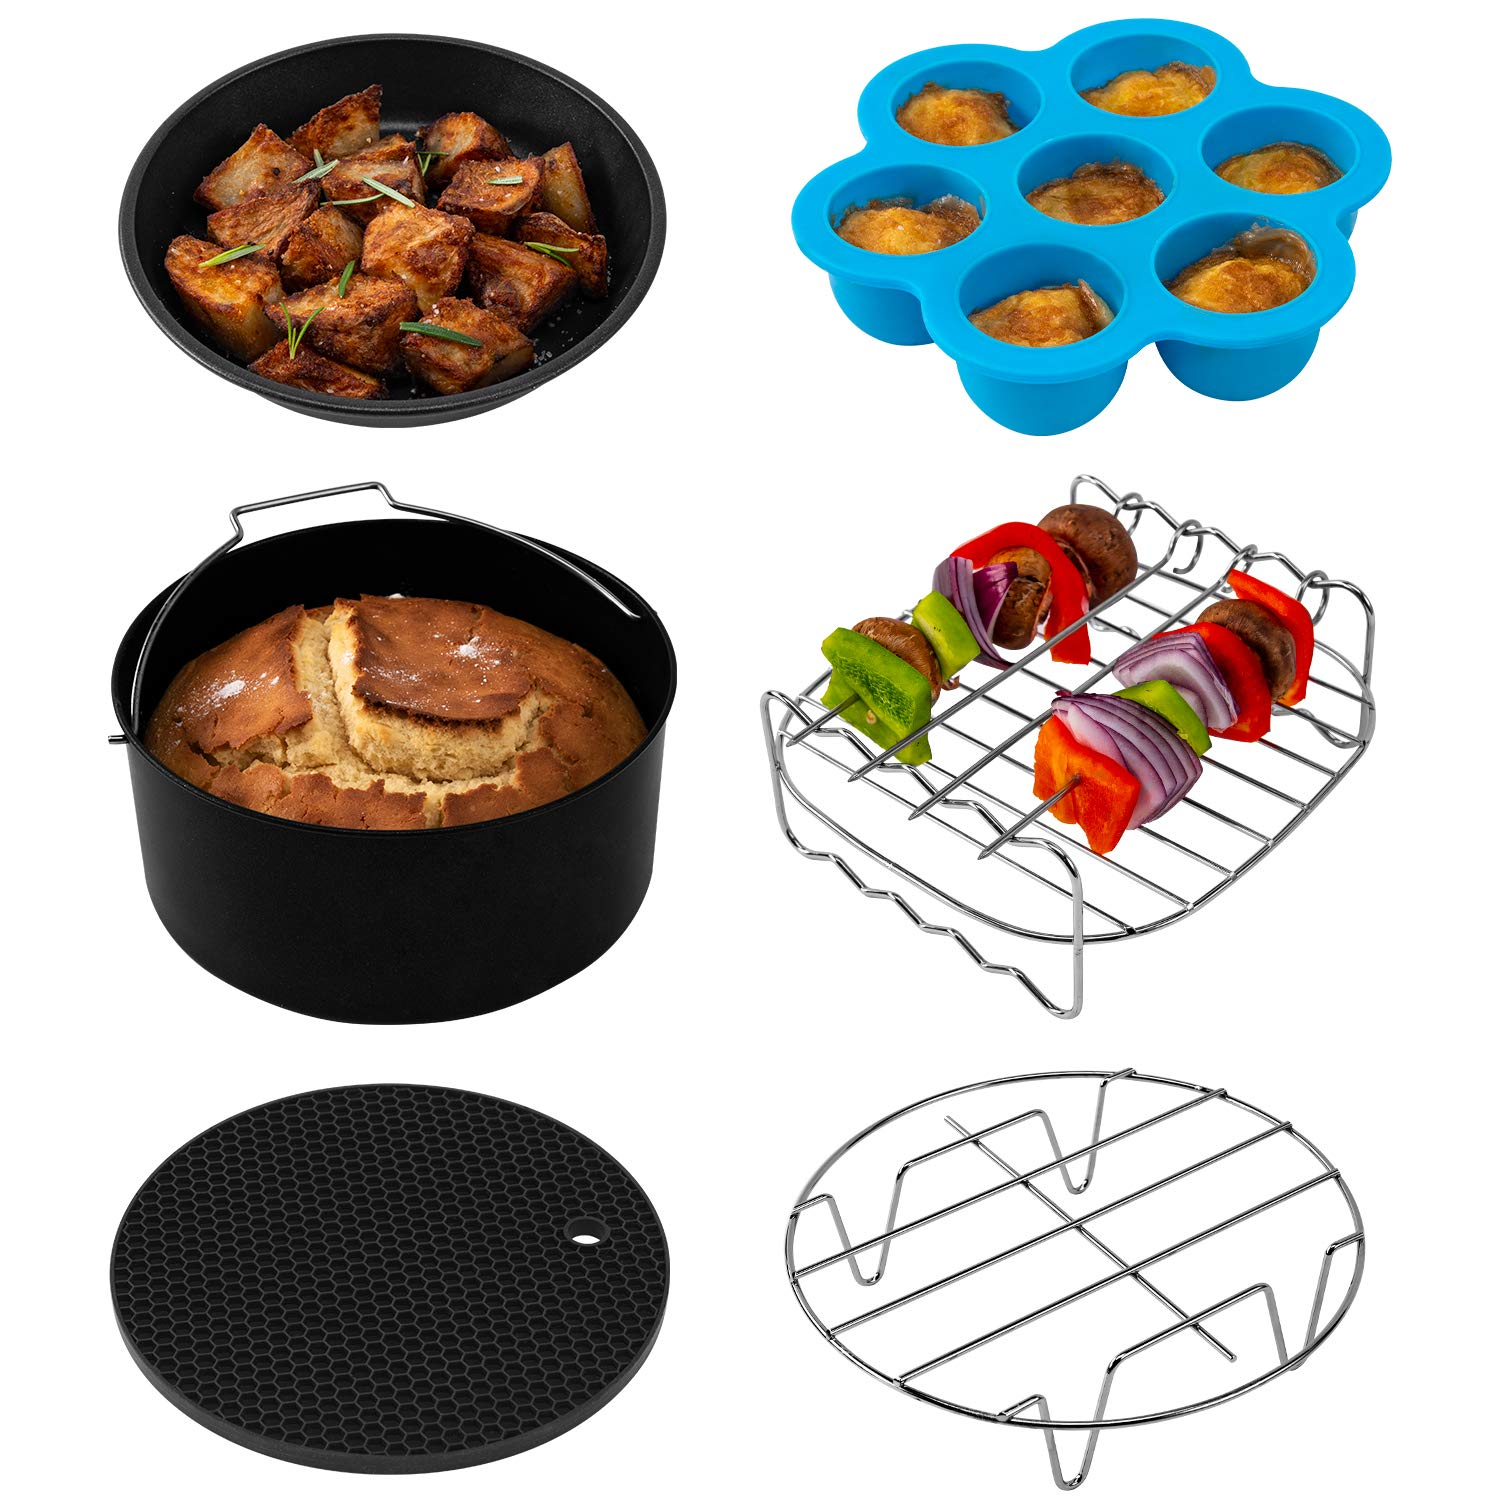 COSORI Air Fryer Accessories (C137-6AC), Set of 6 Fit all 3.7, 4.2QT Air Fryer, FDA Compliant, BPA Free, Dishwasher Safe, Nonstick Coating, 2-Year Warranty